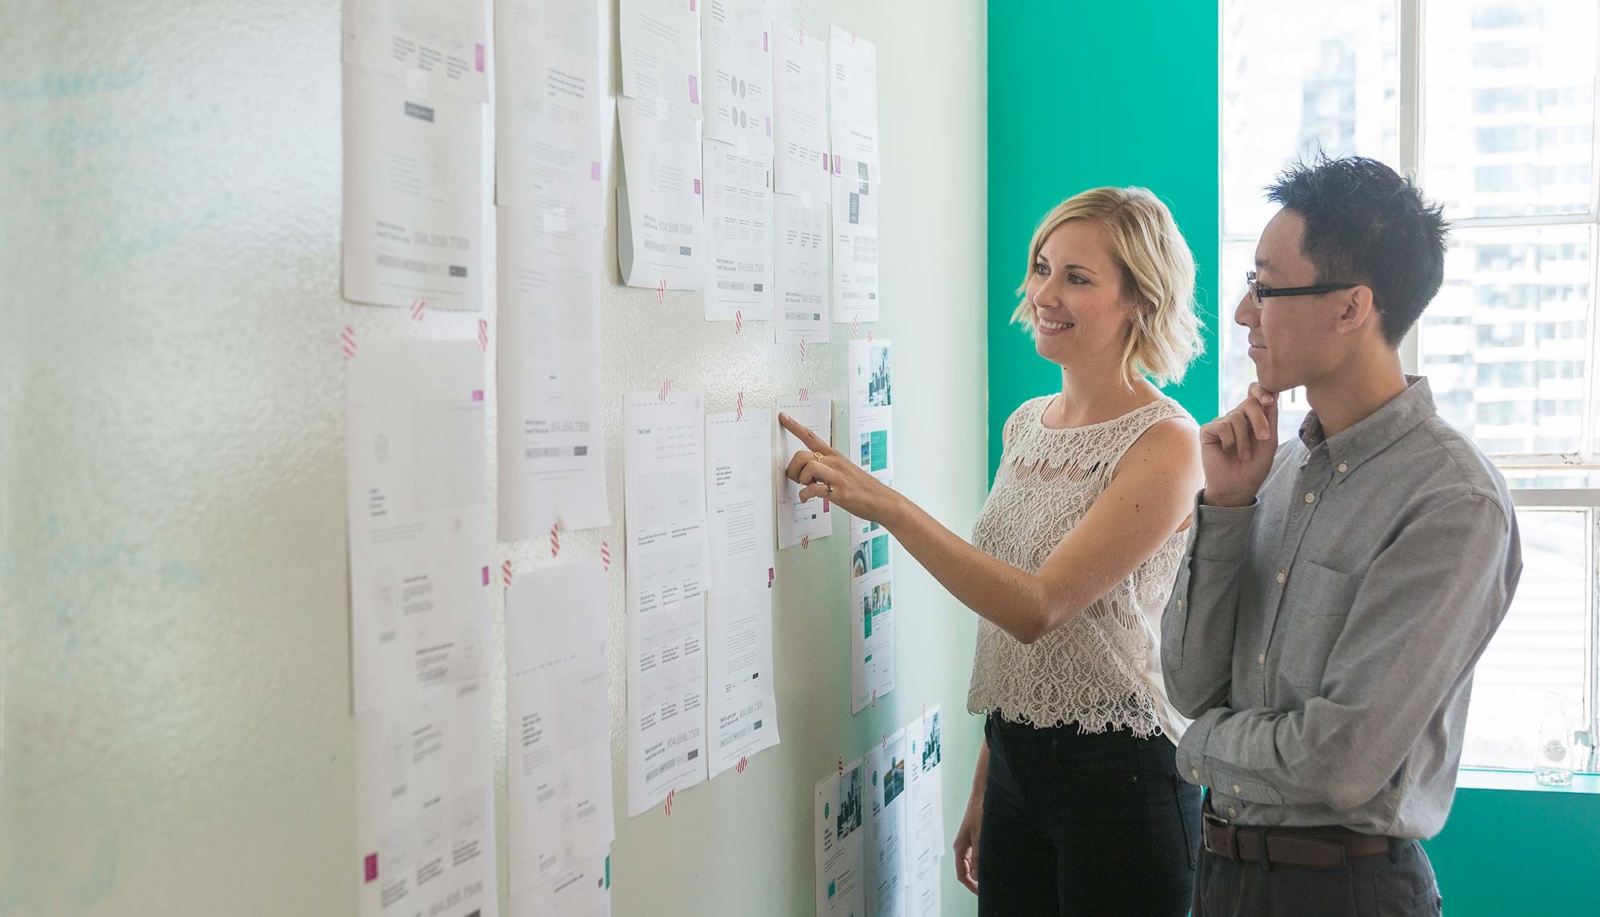 Wireframing and UX design